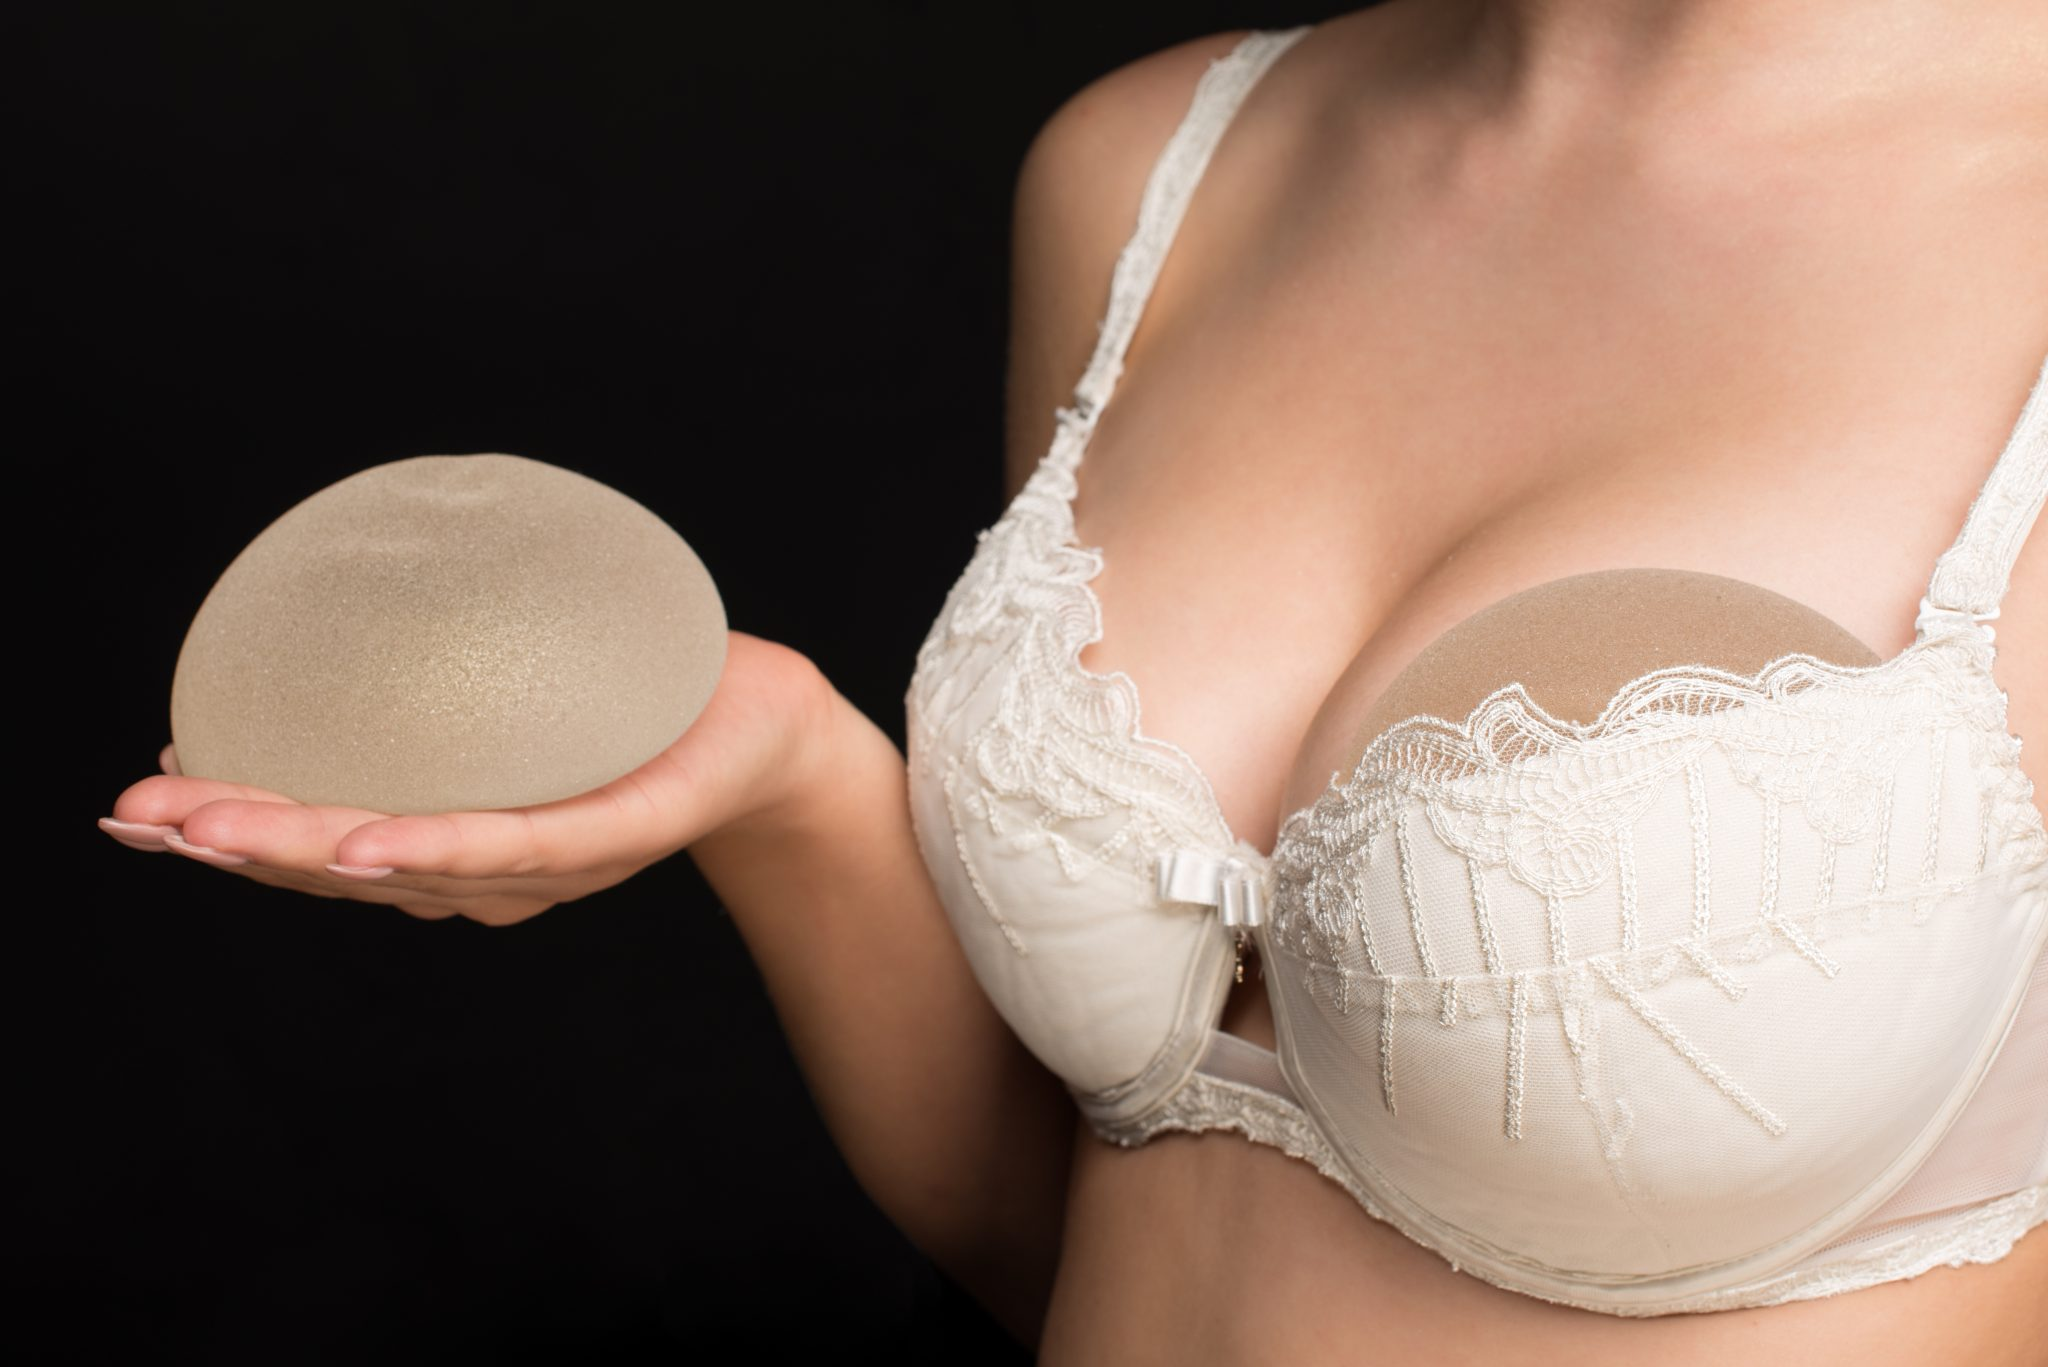 All about Allergan Breast Implants & Your Options